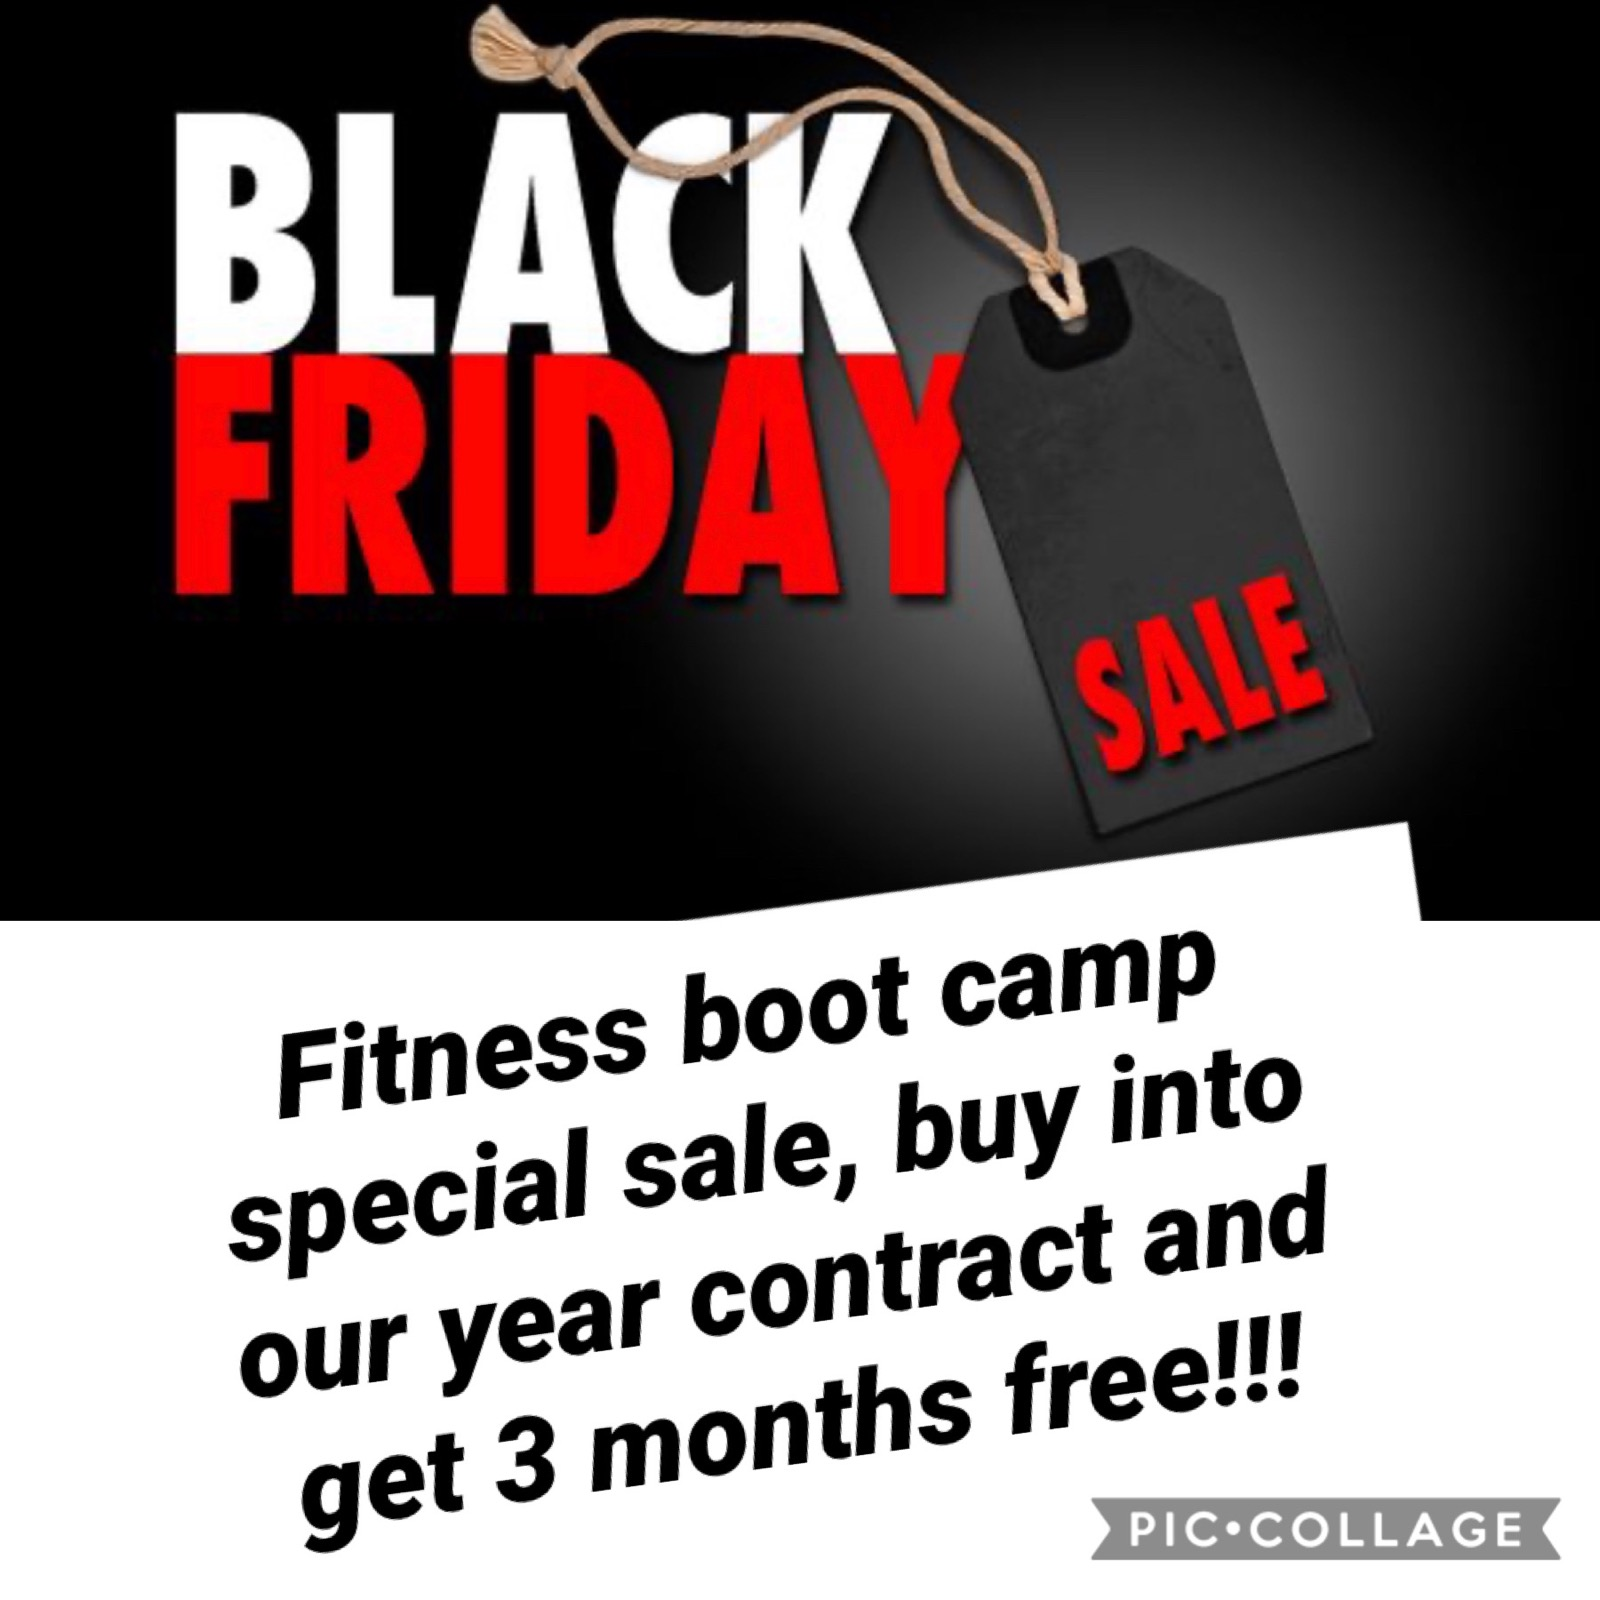 Black Friday Sale: Fitness Boot Camp